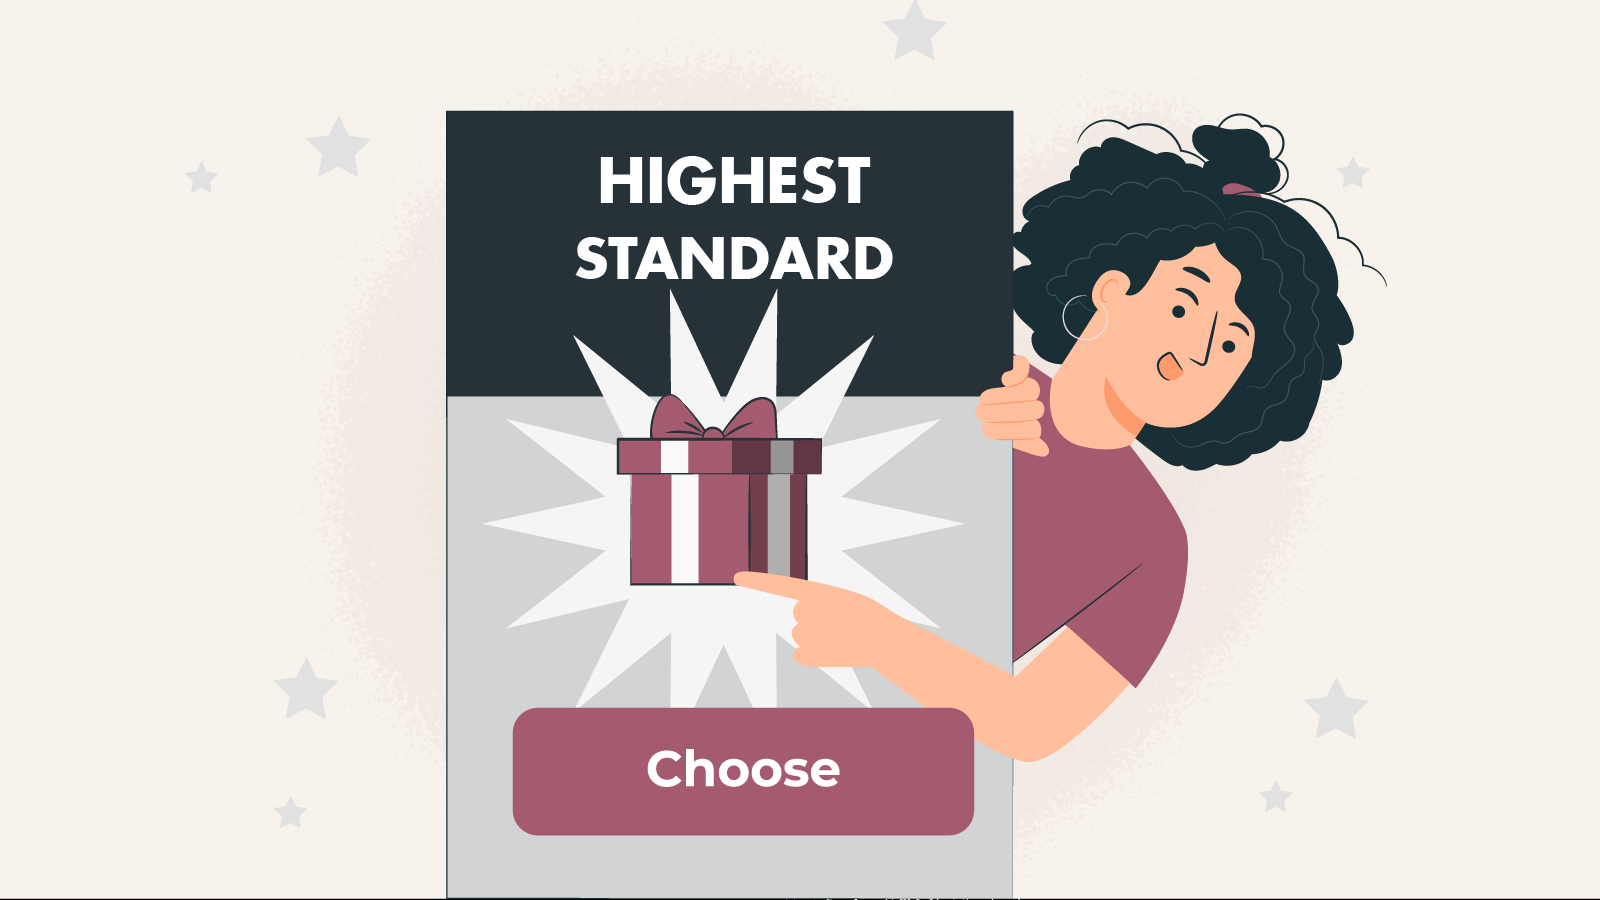 Only the best 100% bonuses at the highest standards